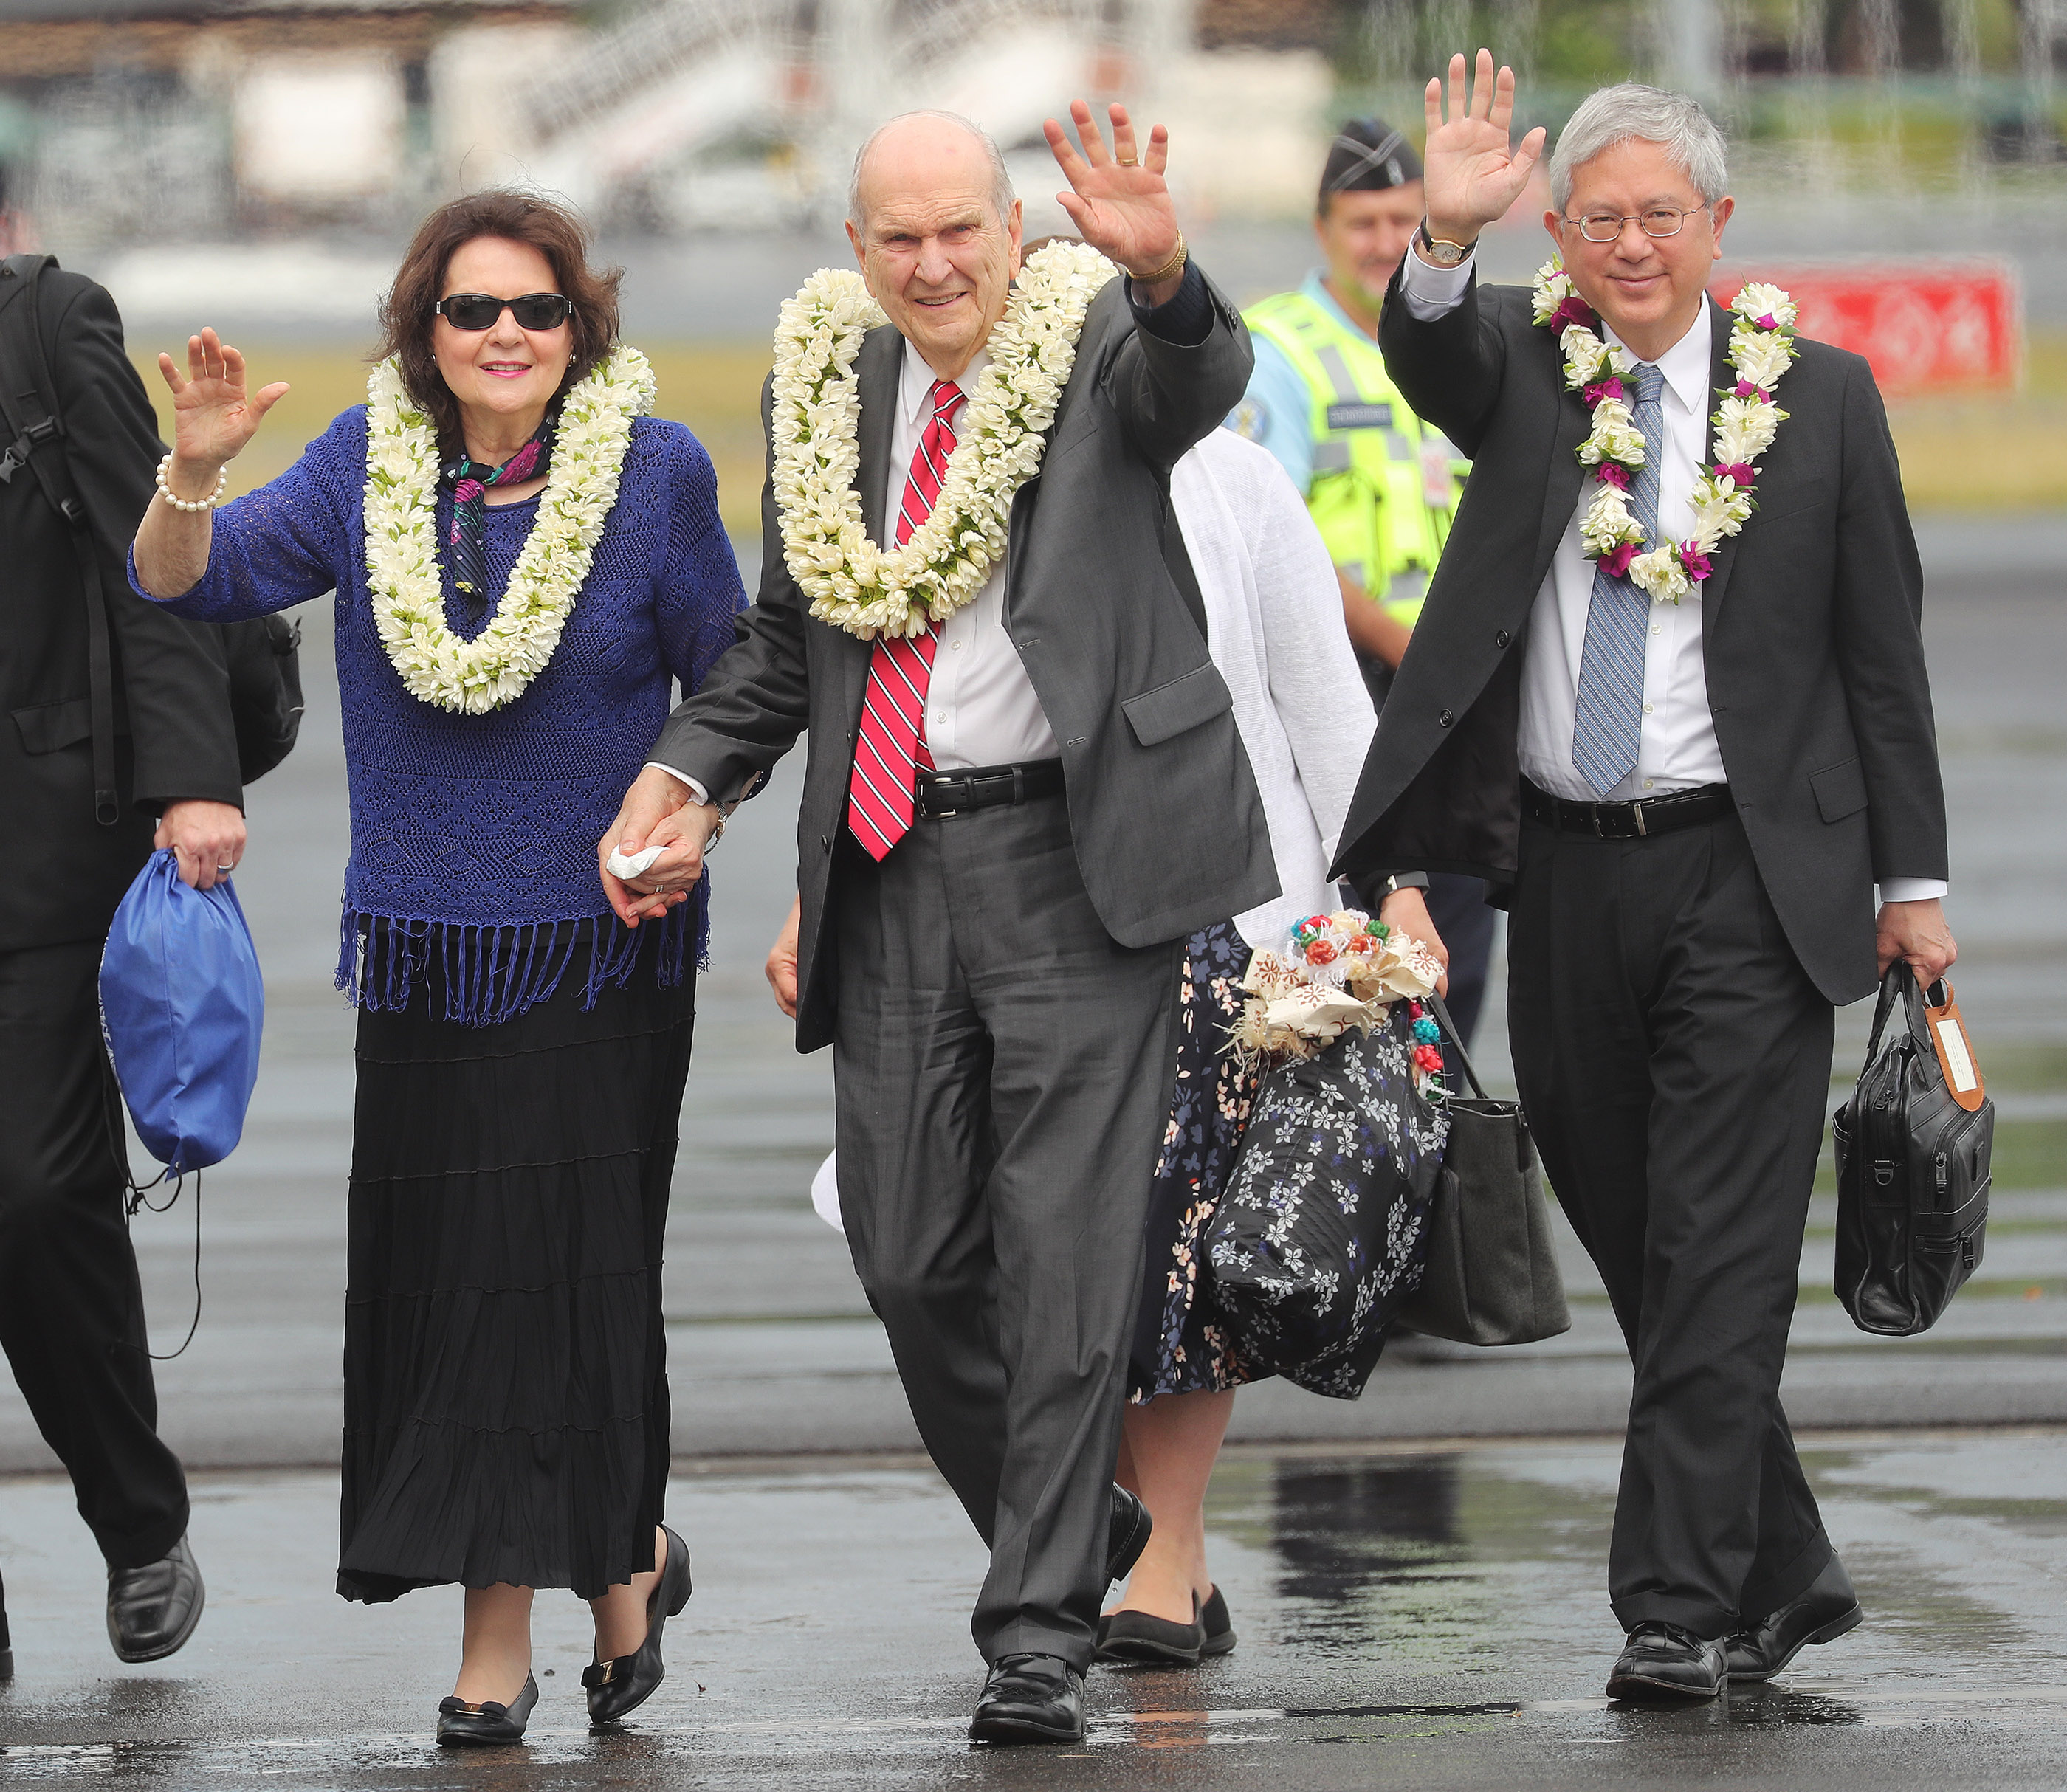 President Russell M. Nelson of The Church of Jesus Christ of Latter-day Saints and his wife, Sister Wendy Nelson, and Elder Gerrit W. Gong of the Quorum of the Twelve Apostles, wave upon arrival in Papeete, Tahiti, on May 23, 2019.